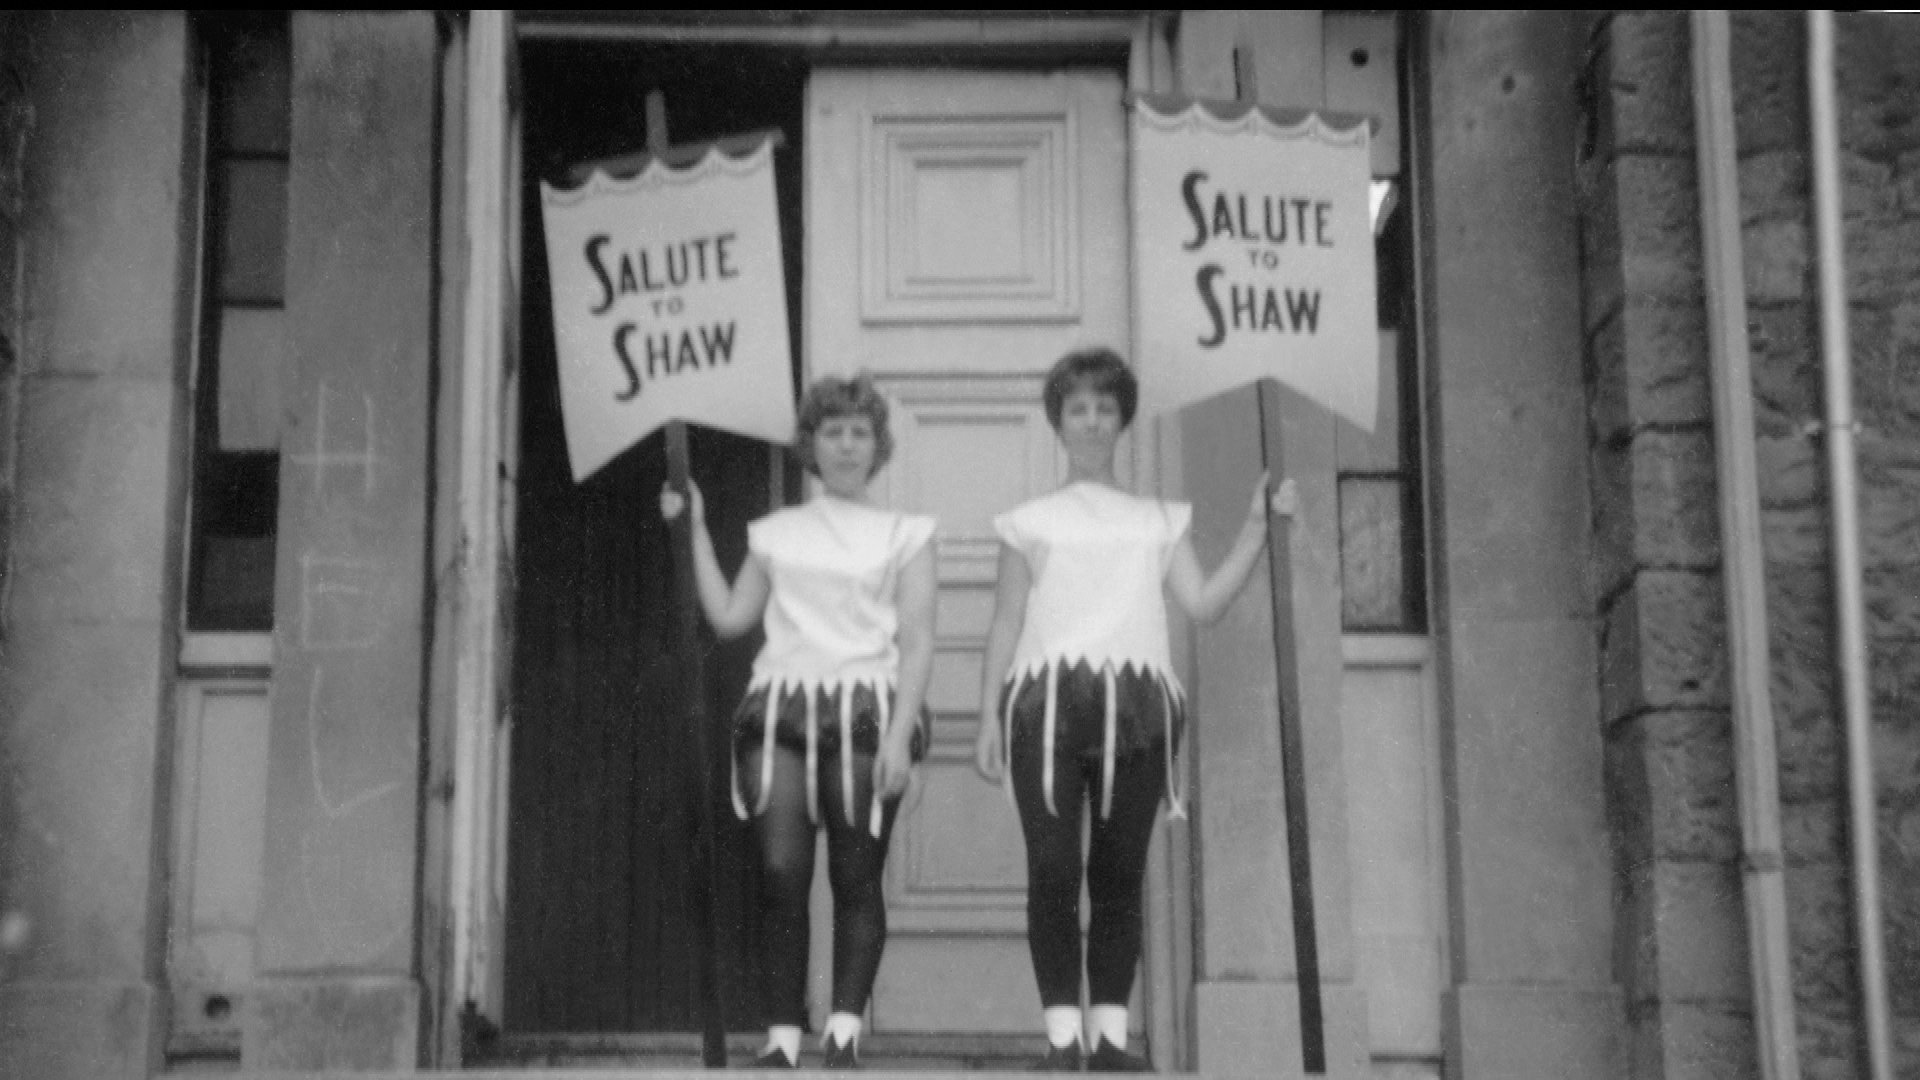 """Salute to Shaw"" at the Court House Theatre, 1962."